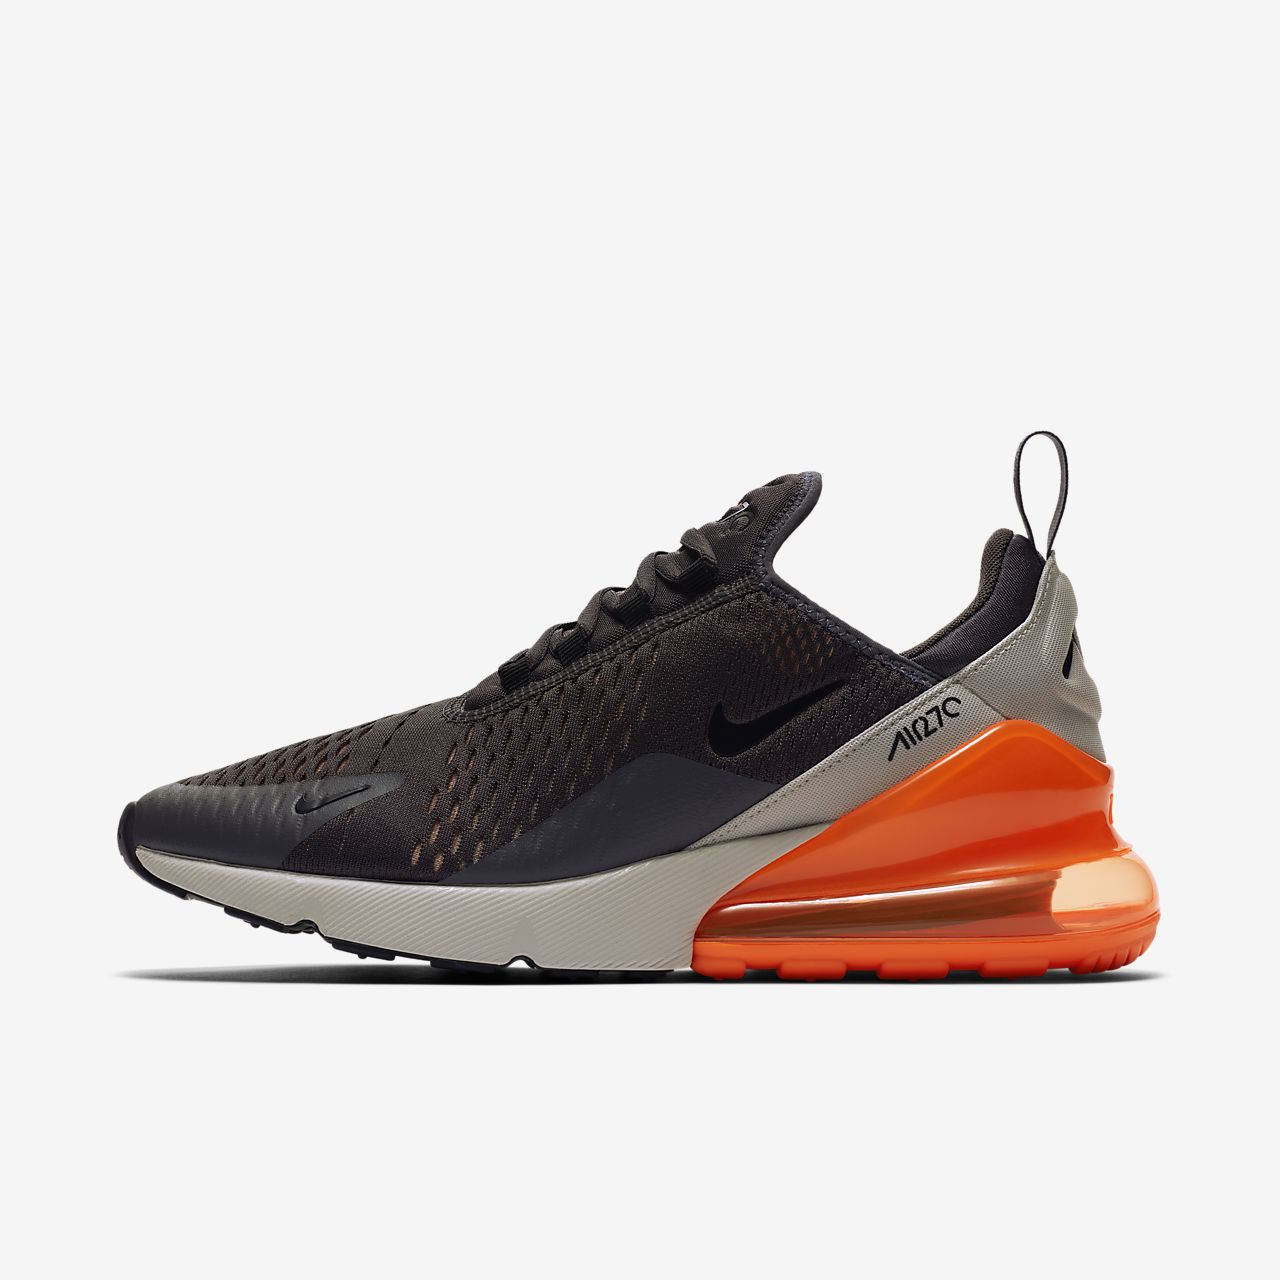 big sale online retailer outlet boutique Nike Air Max 270 Herrenschuh